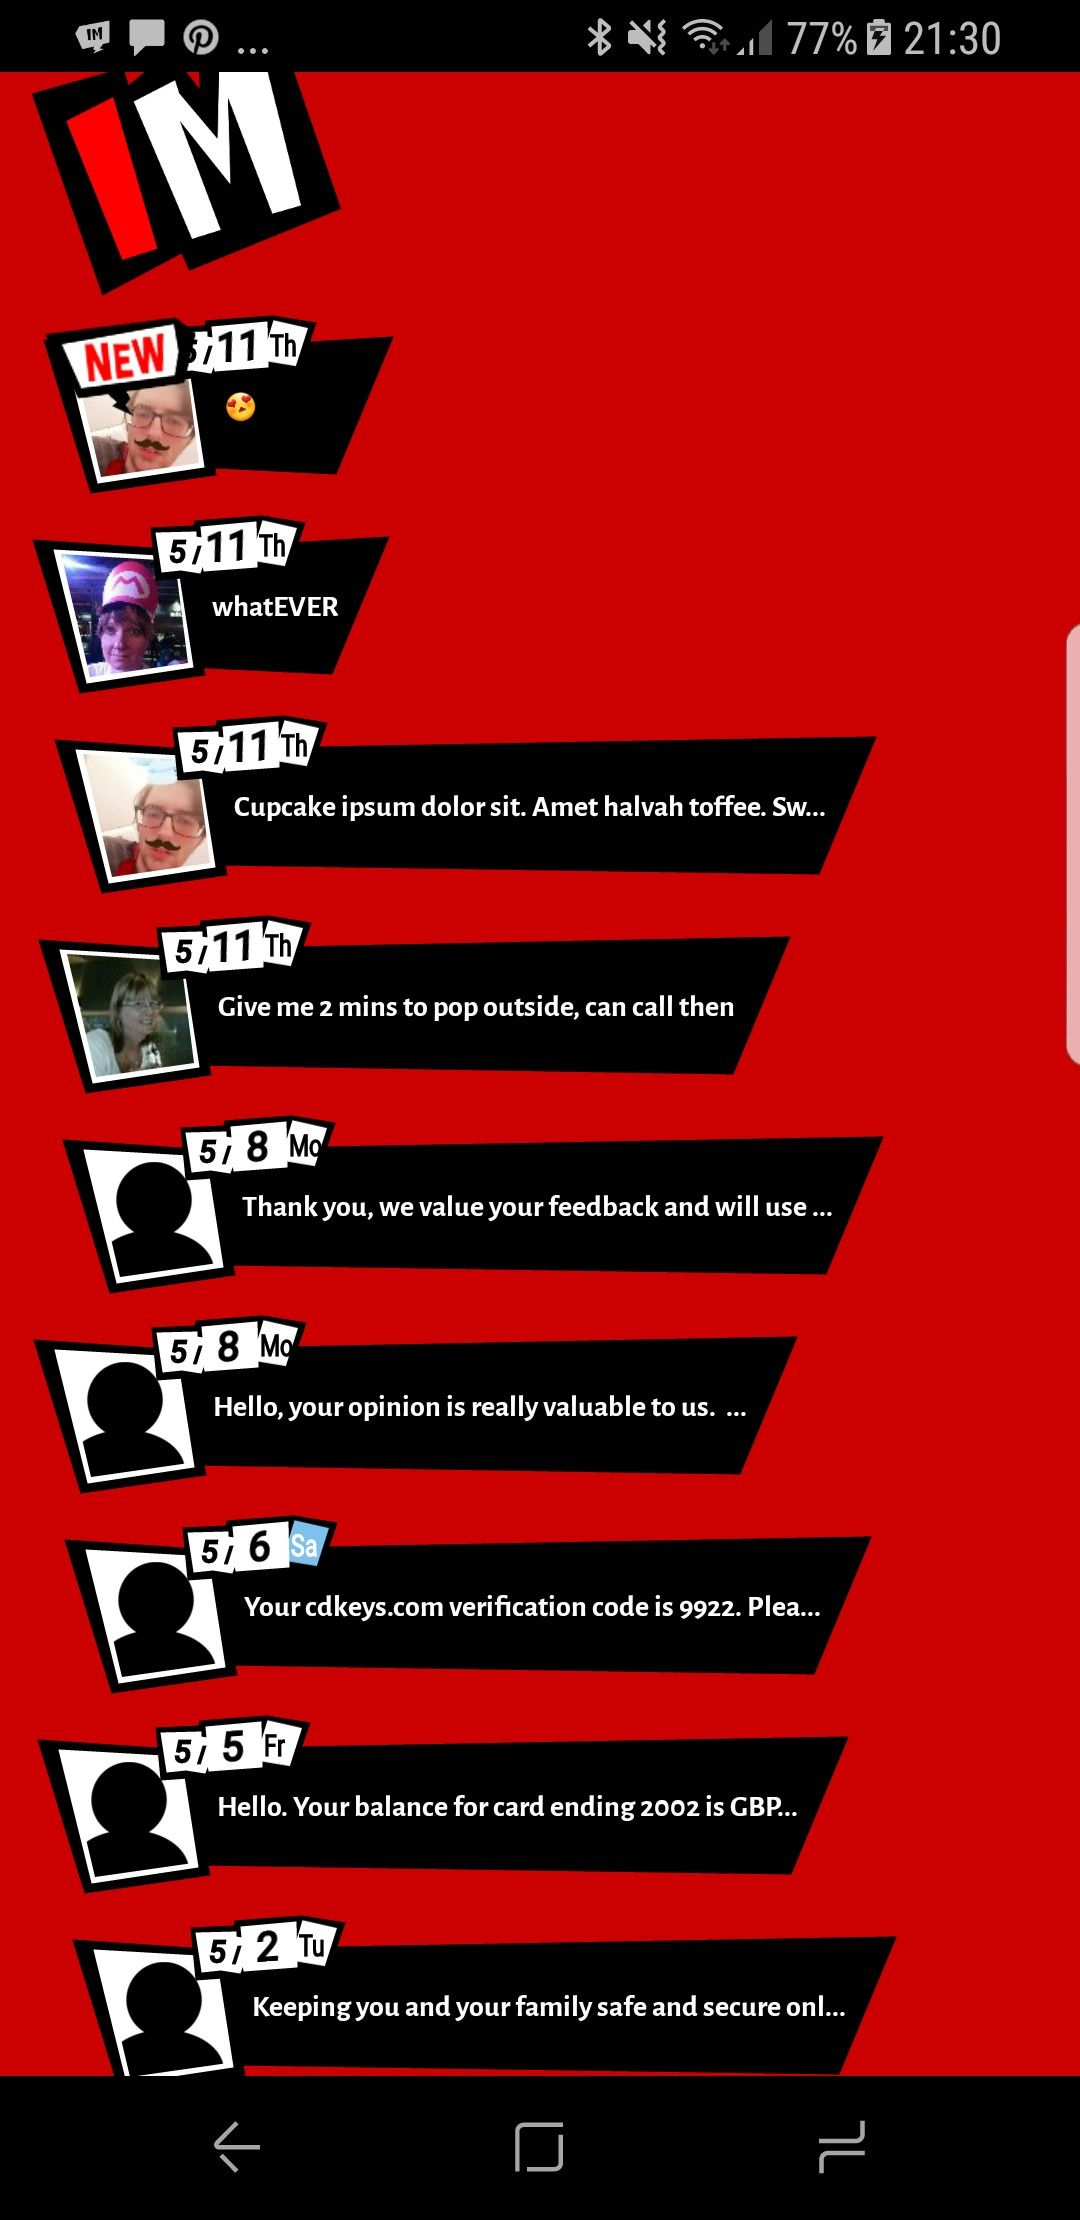 Another screen from my WIP Persona 5 text messaging Android